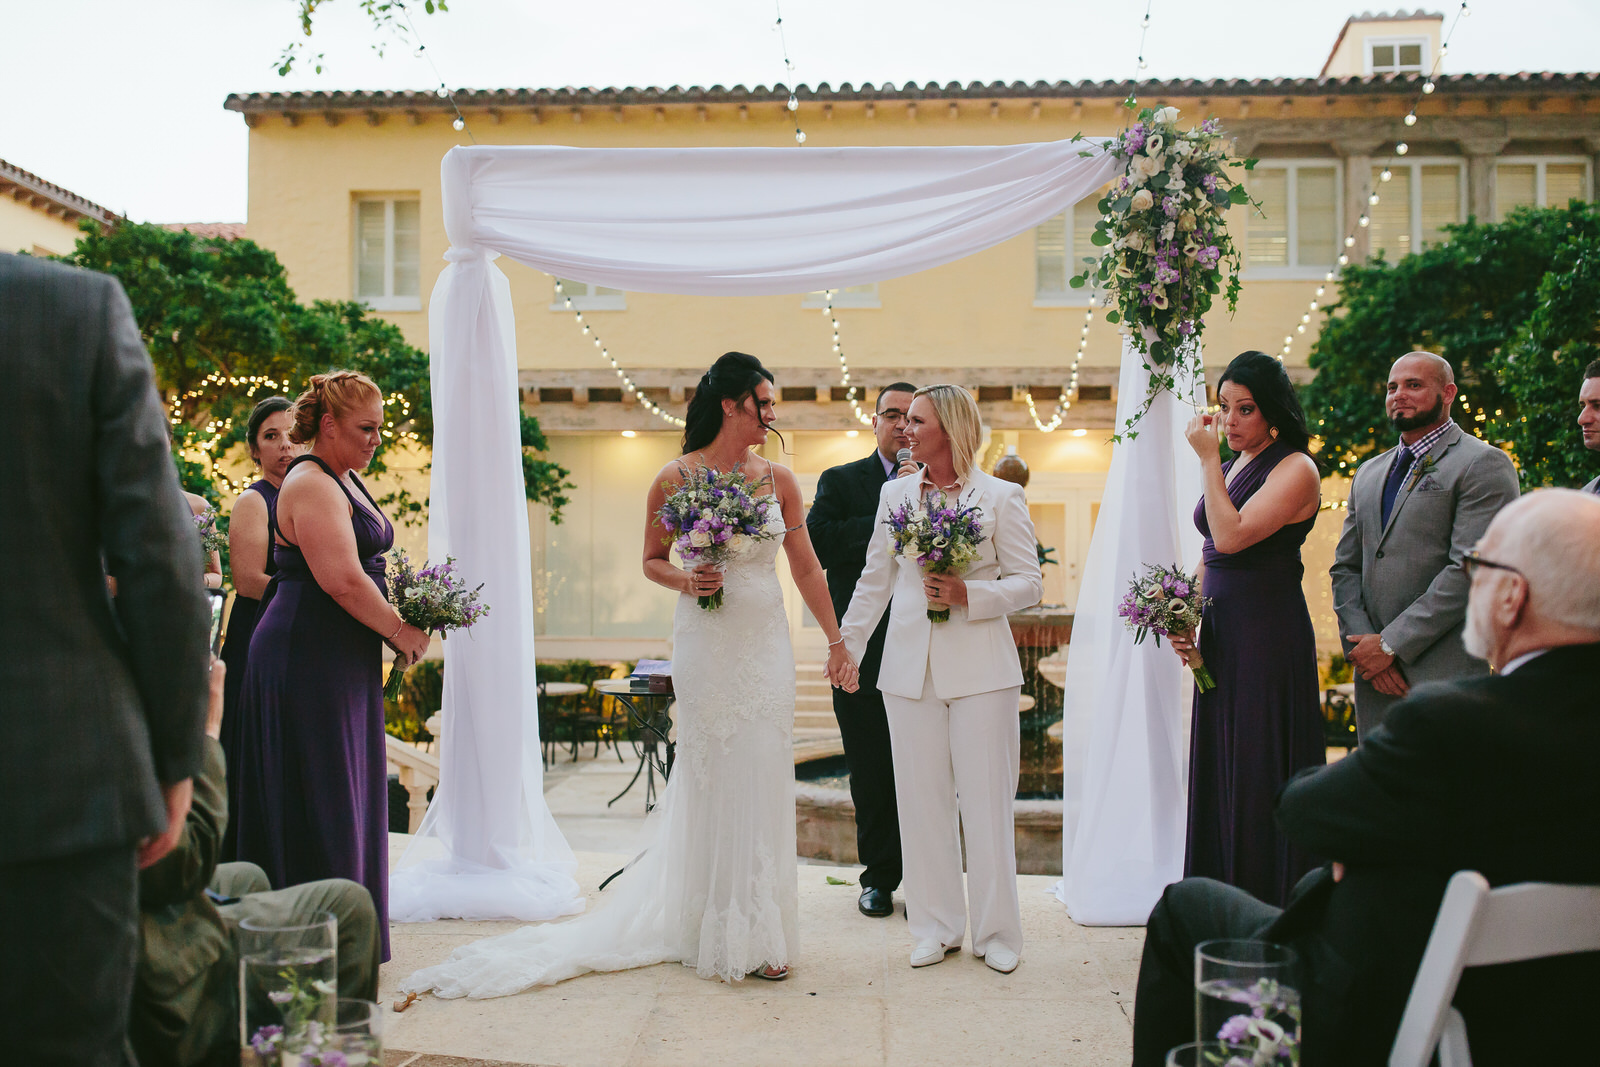 two_brides_wedding_ceremony_married_tiny_house_photo.jpg